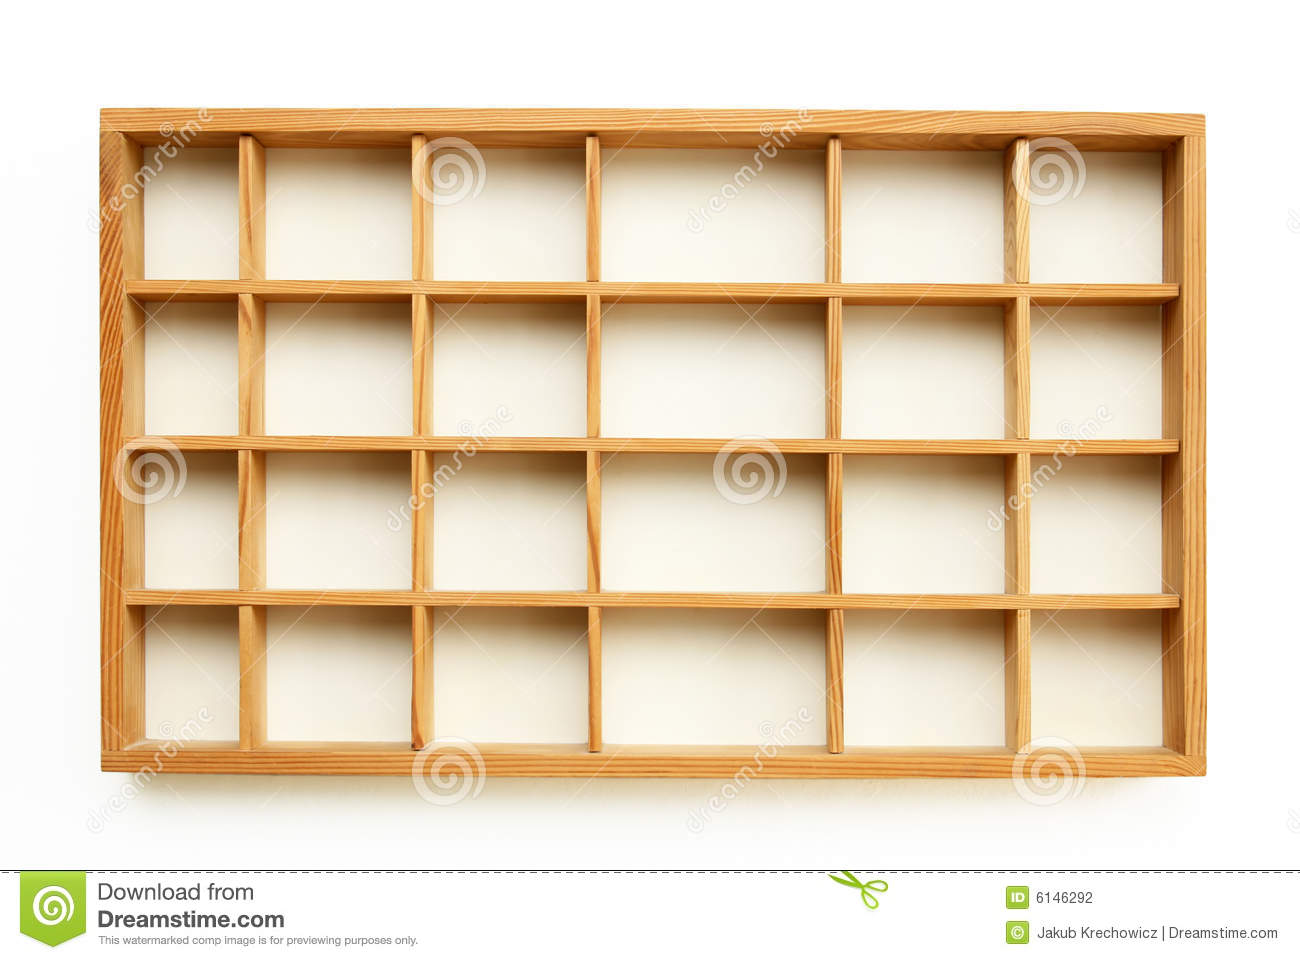 Small Wooden Shelves Stock Photography - Image: 6146292